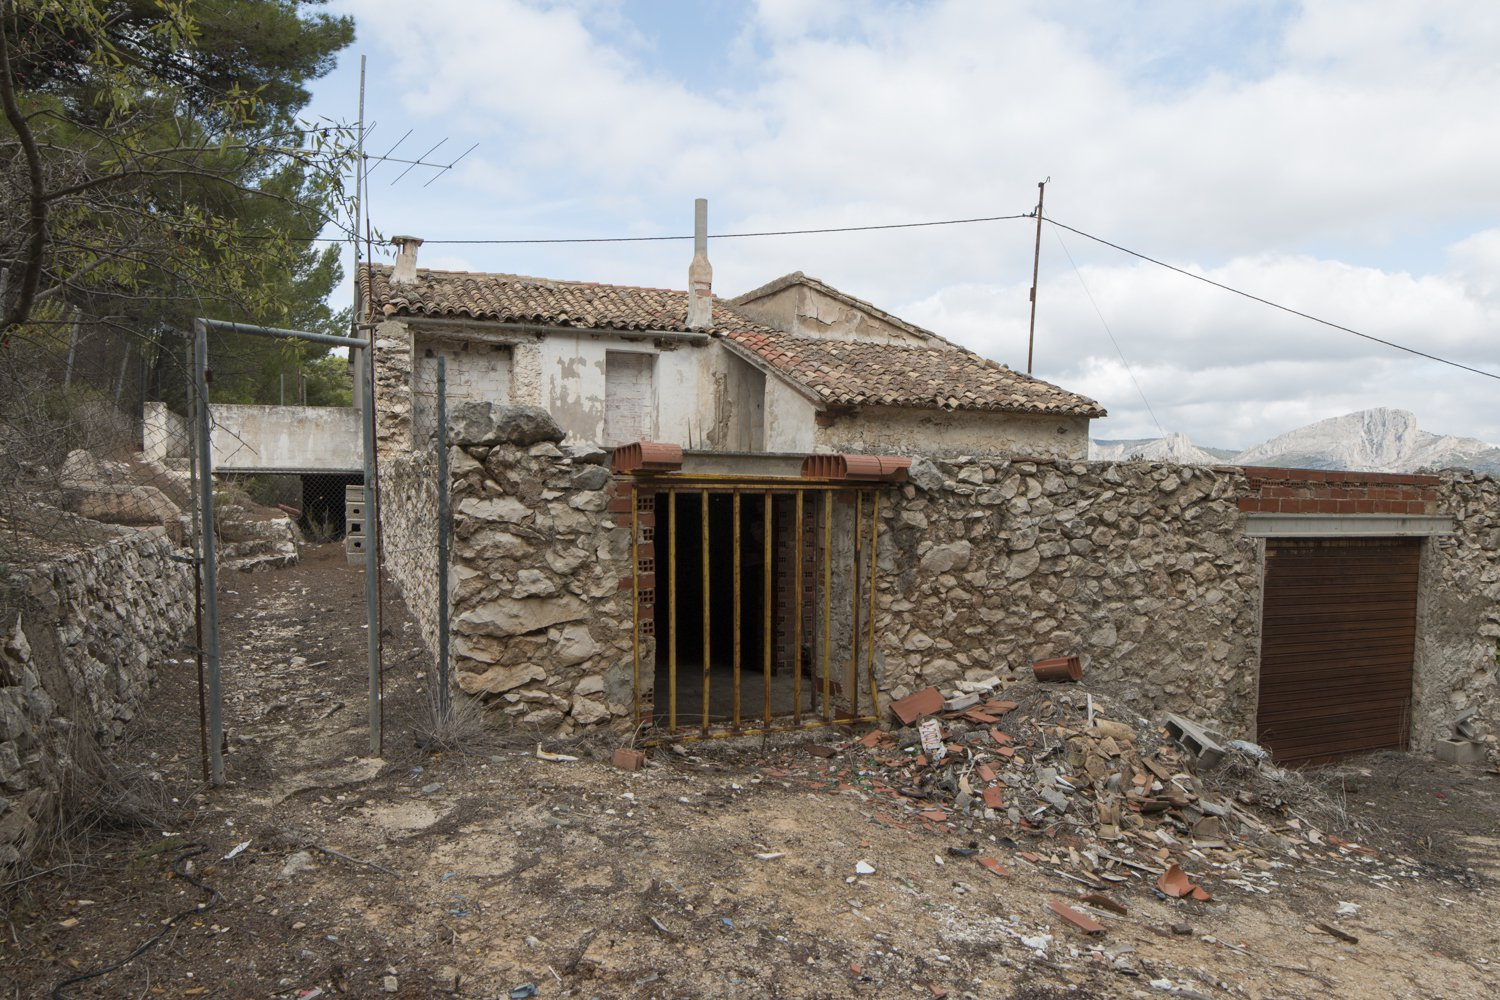 Old Masia of the year 1800 to restore